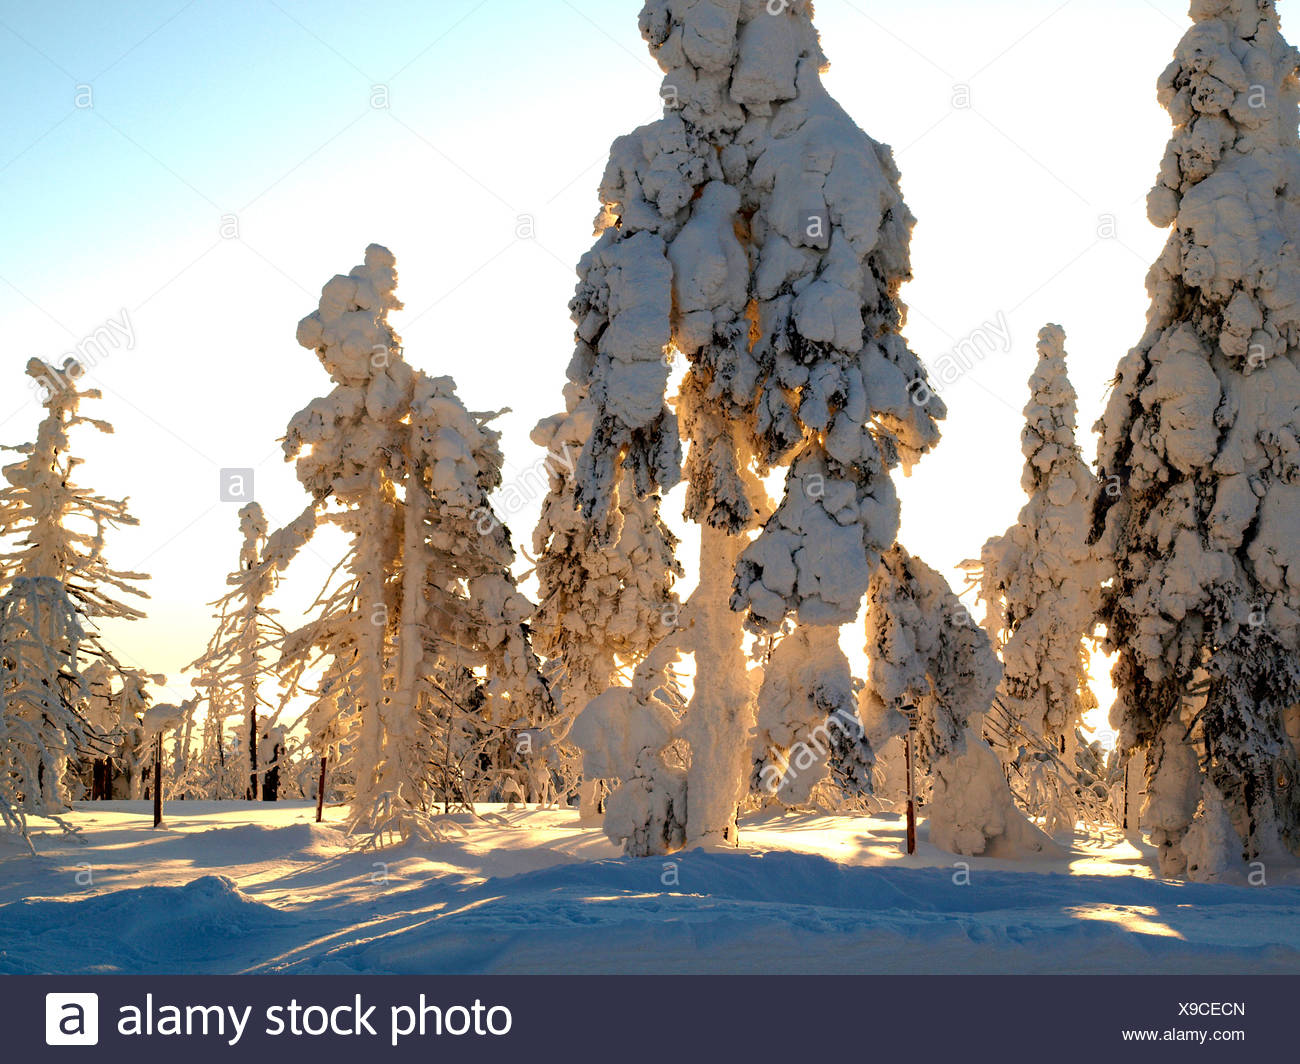 snow-covered light conifer forest in the sunshine, Czech Republic, Erz Mountains, Keilberg - Stock Image